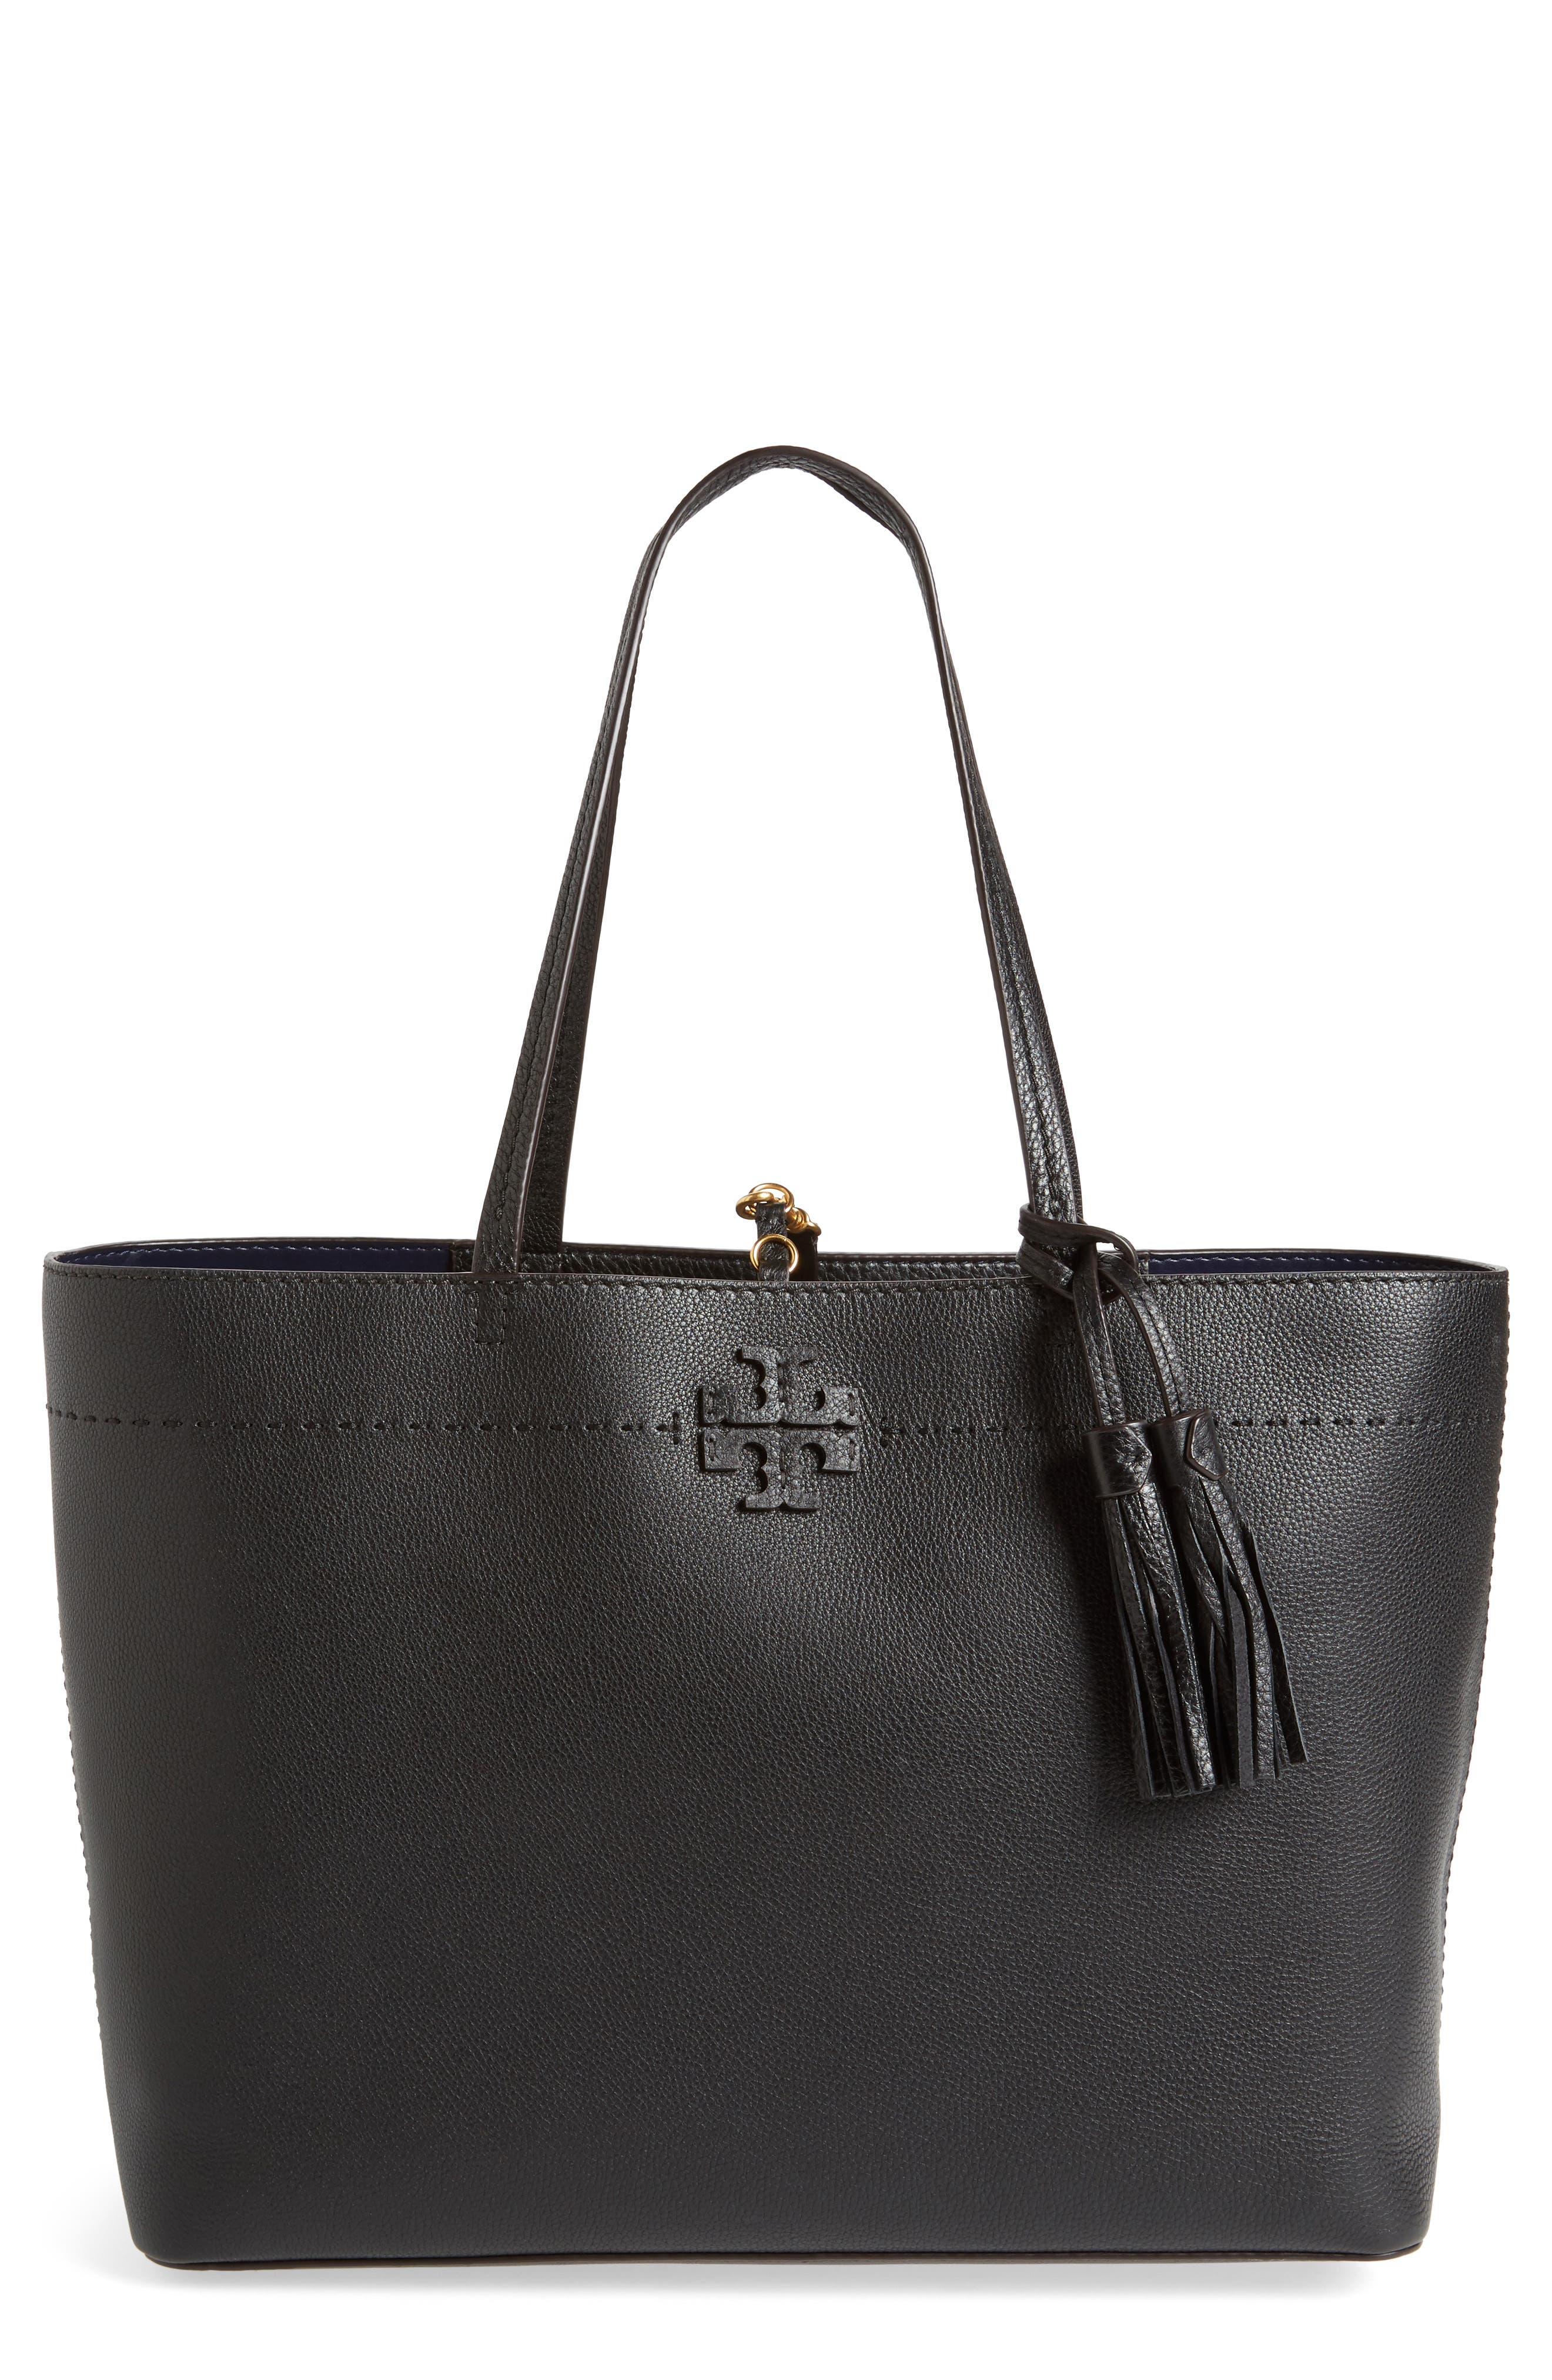 Main Image - Tory Burch McGraw Leather Tote